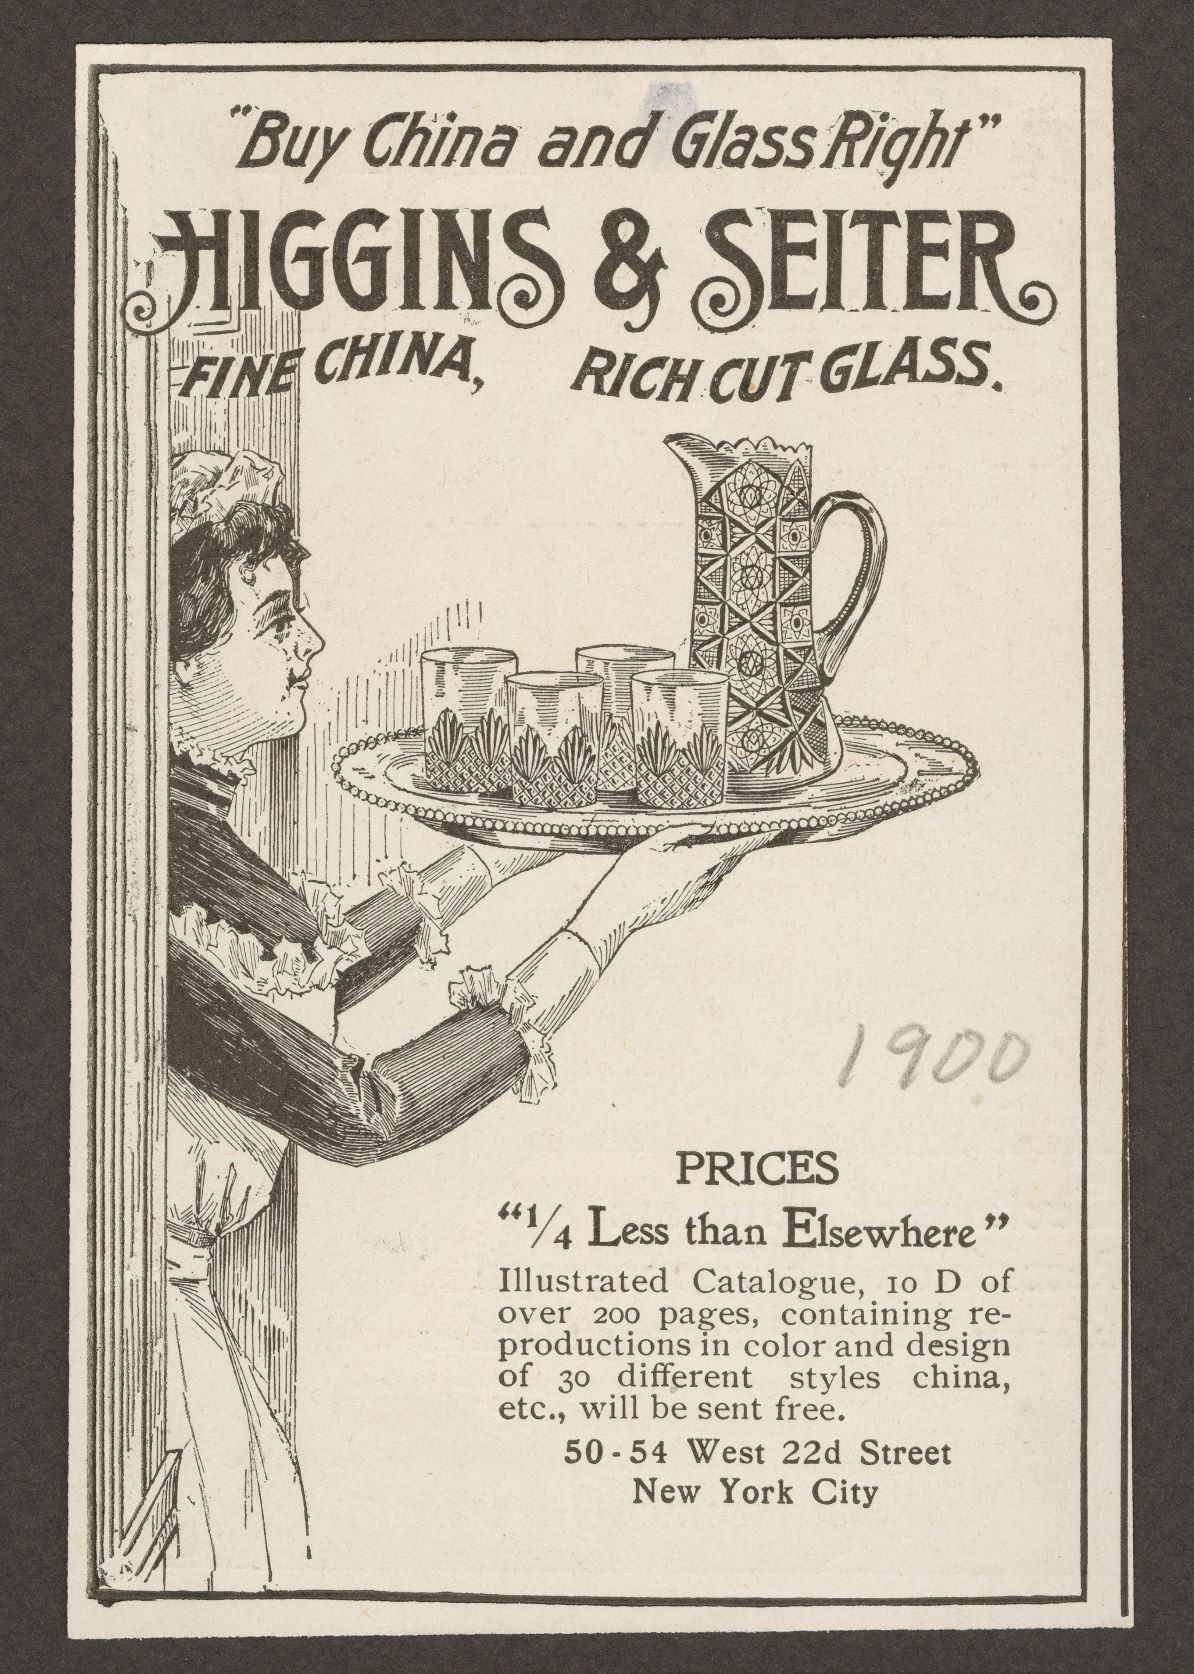 Maid with cut glass pitcher and glasses